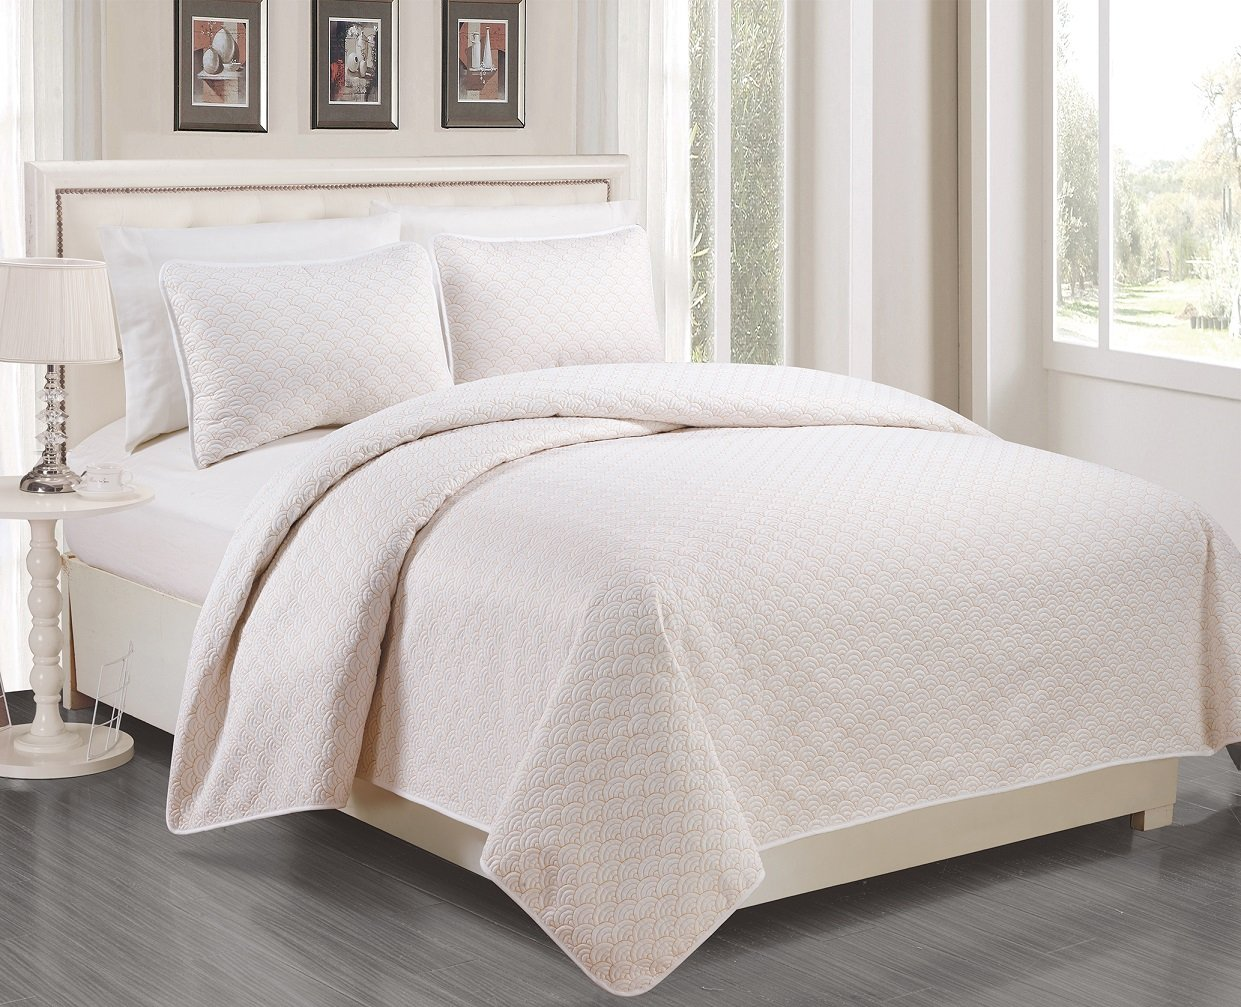 EverRouge 0027368WK Malibu Oversized Quilted 3Piece Bedspread Set, White/Pumpkin, King Landmark Tex Inc.